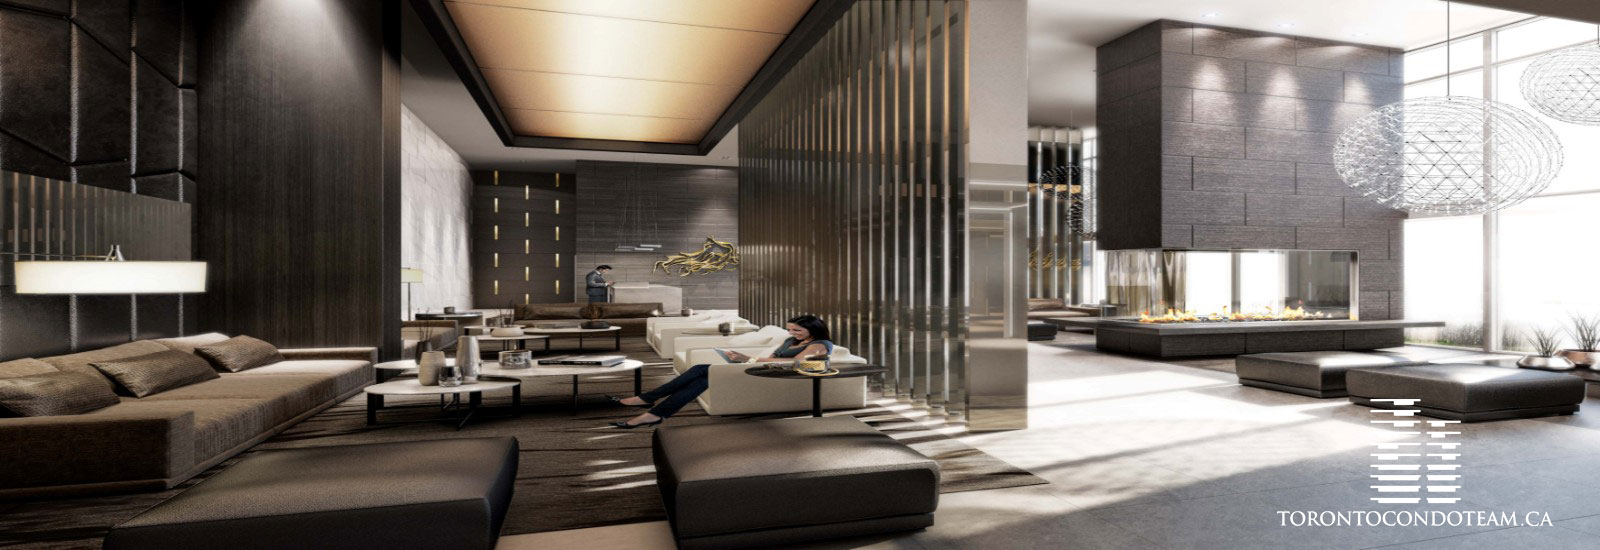 5200 Yonge Street Condos For Sale